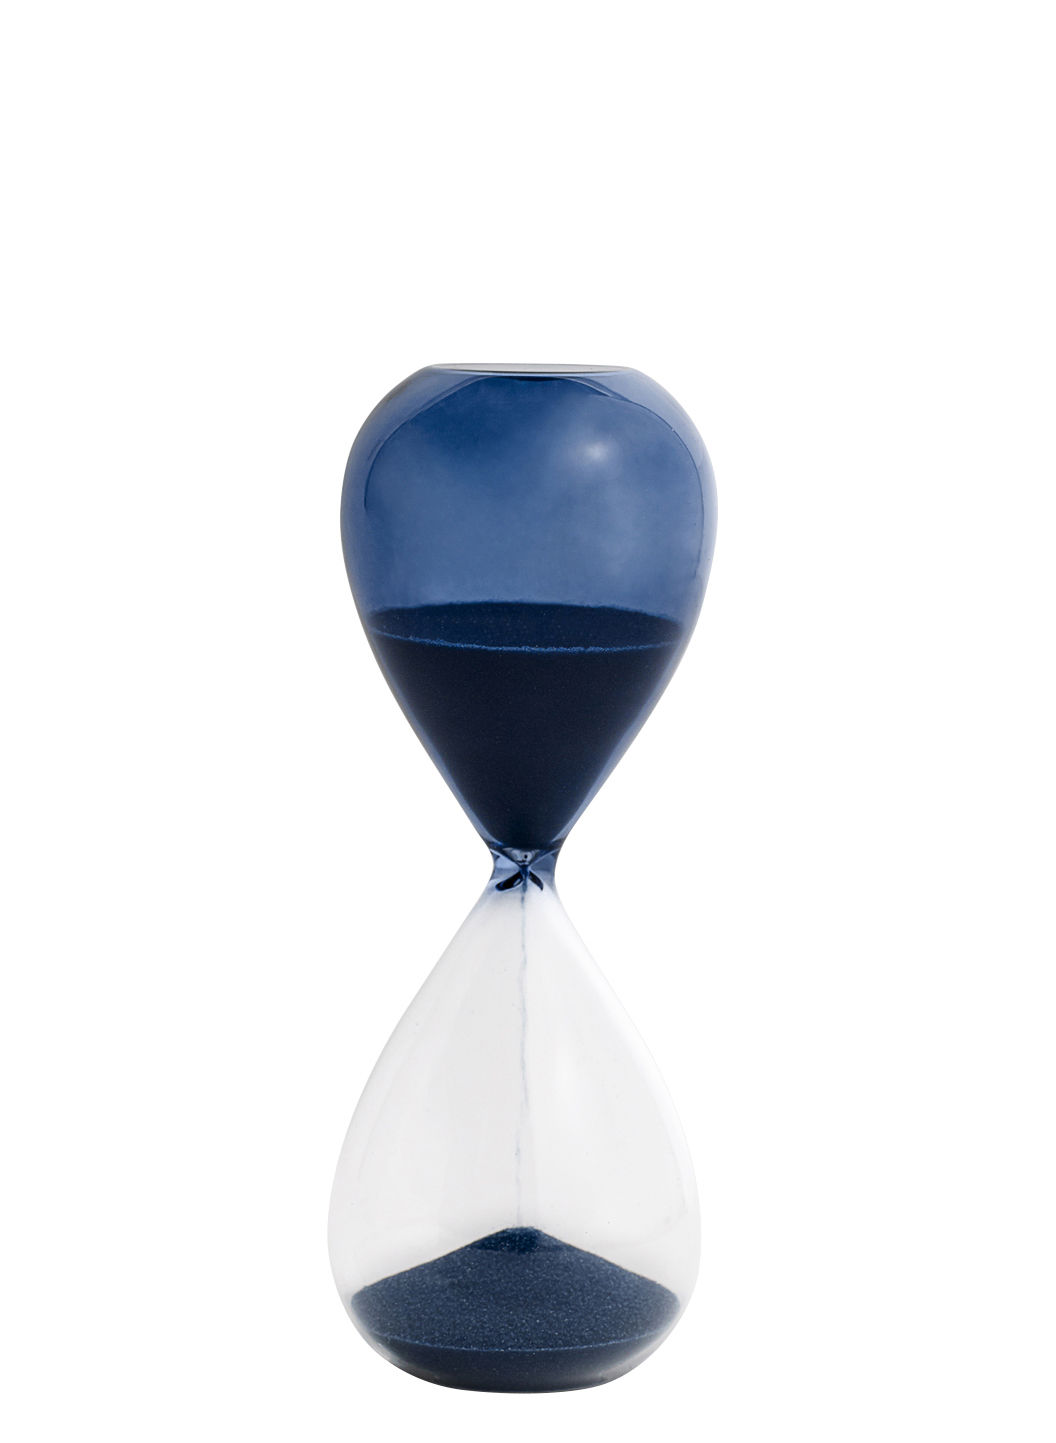 Decoration - Home Accessories - Time Medium Egg timer - 15 minuts / H 15 cm by Hay - Petrol blue - Glass, Sand